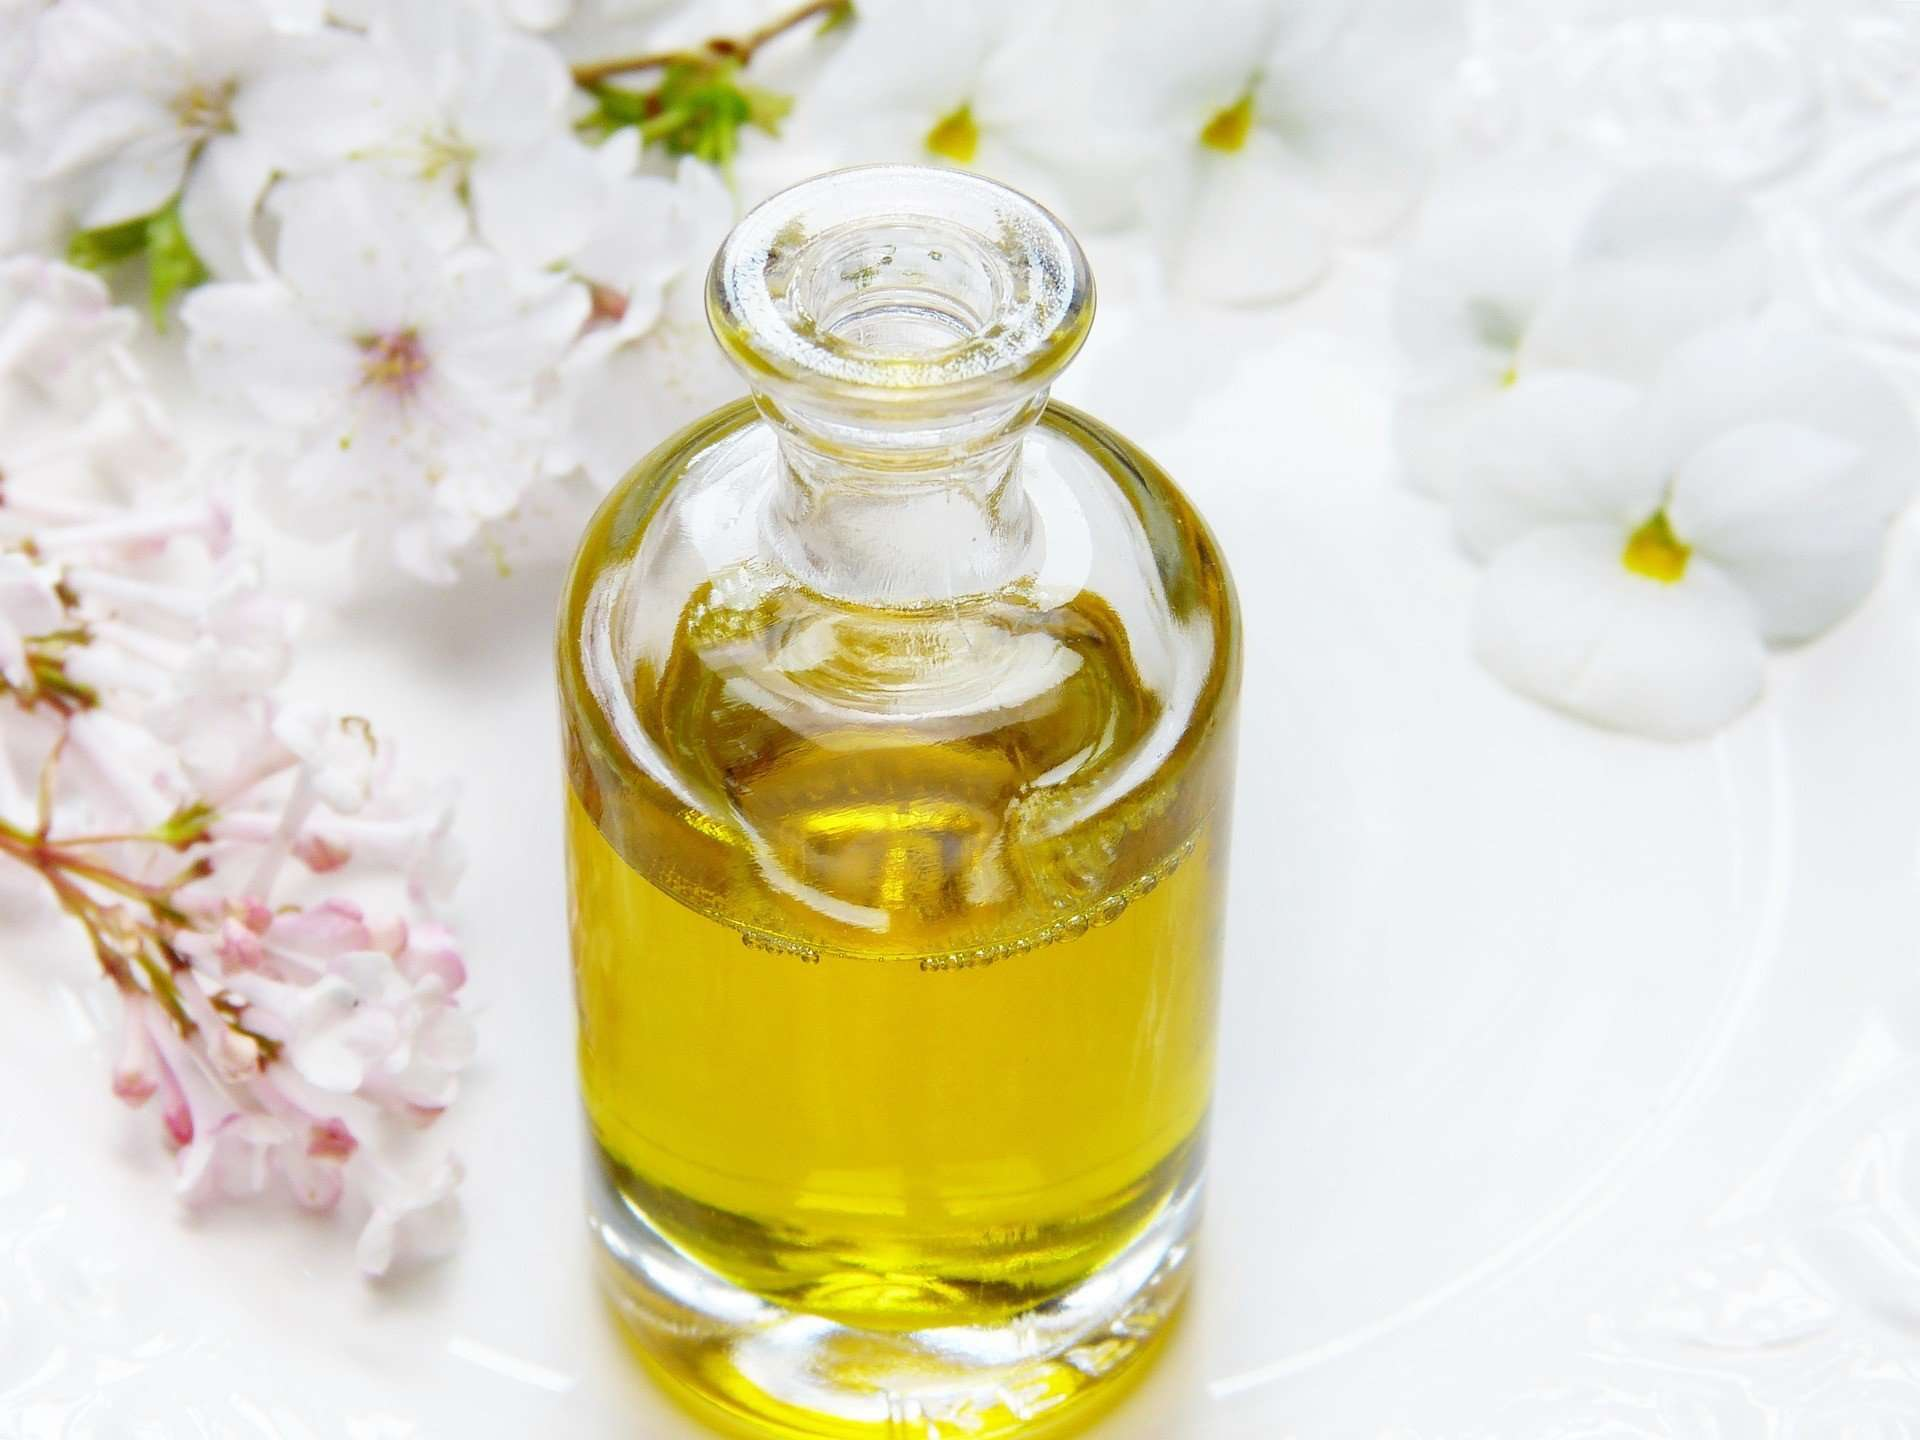 DIY Pain relieving Marijuana and Frankincense Massage Oil